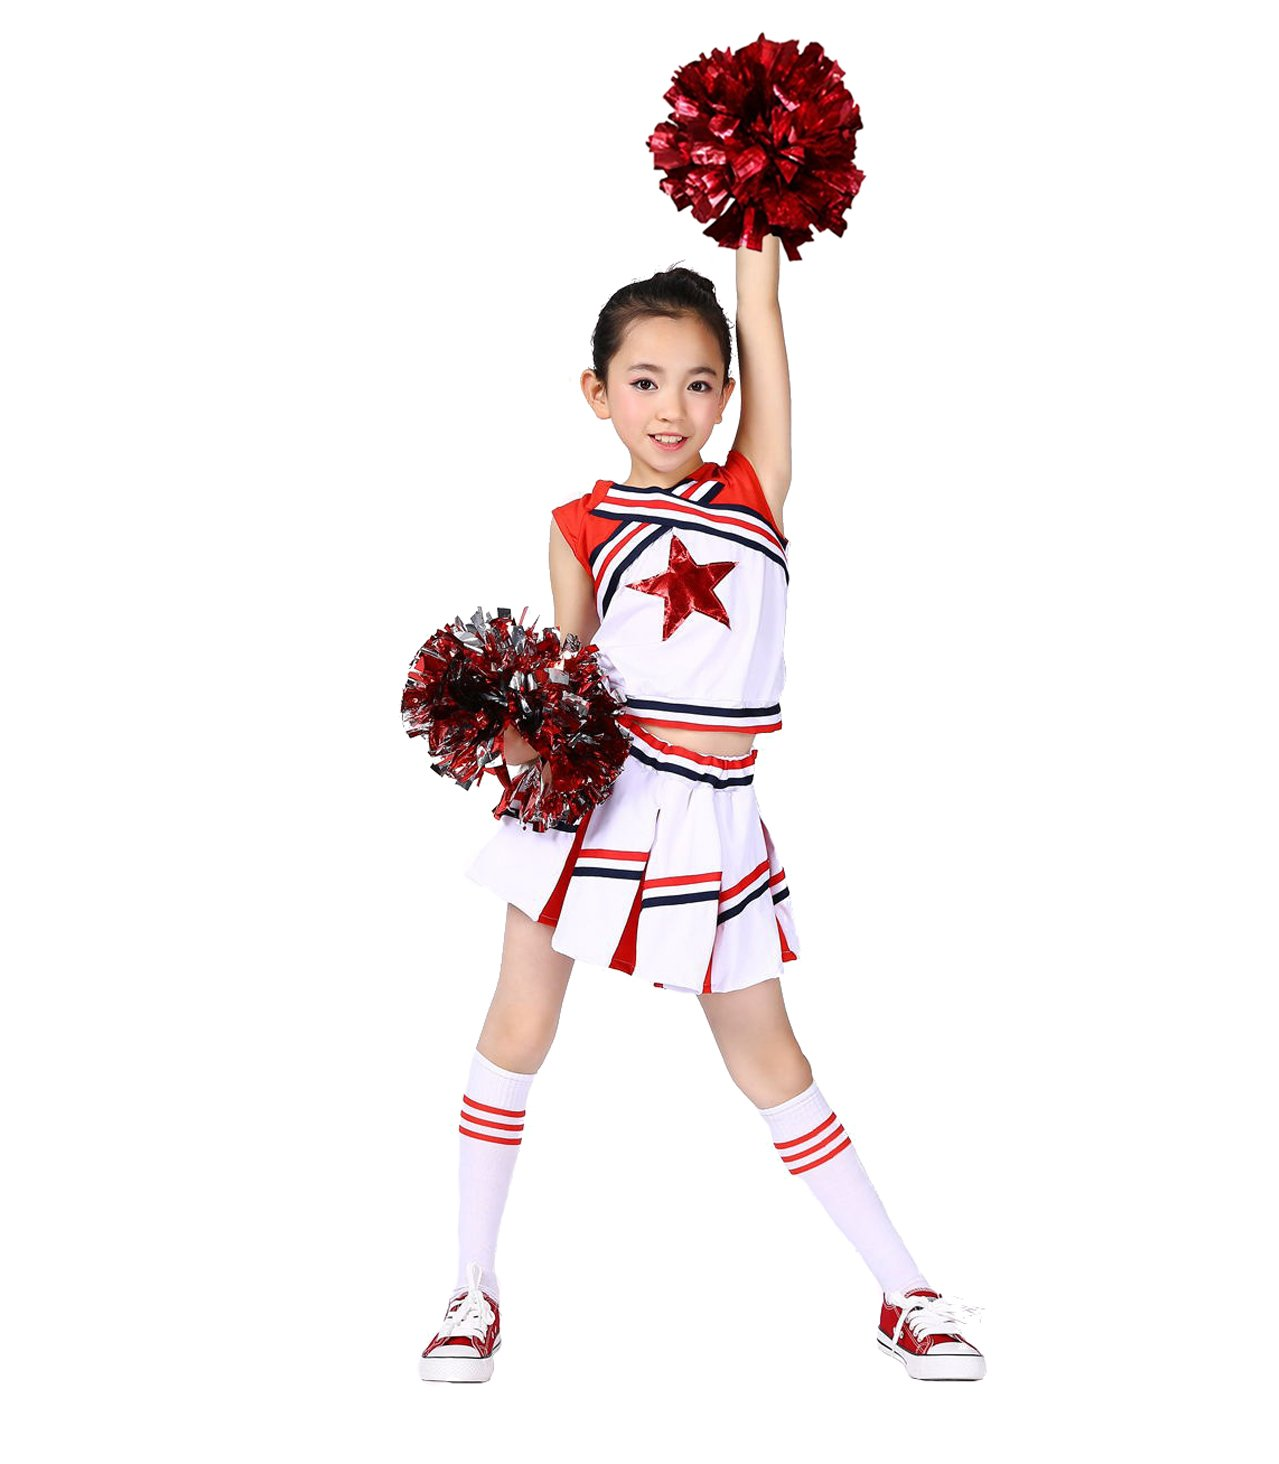 DREAMOWL Girls Cheerleader Uniform Outfit Costume Fun Varsity Brand Youth Red White Match Pom poms (5-6)